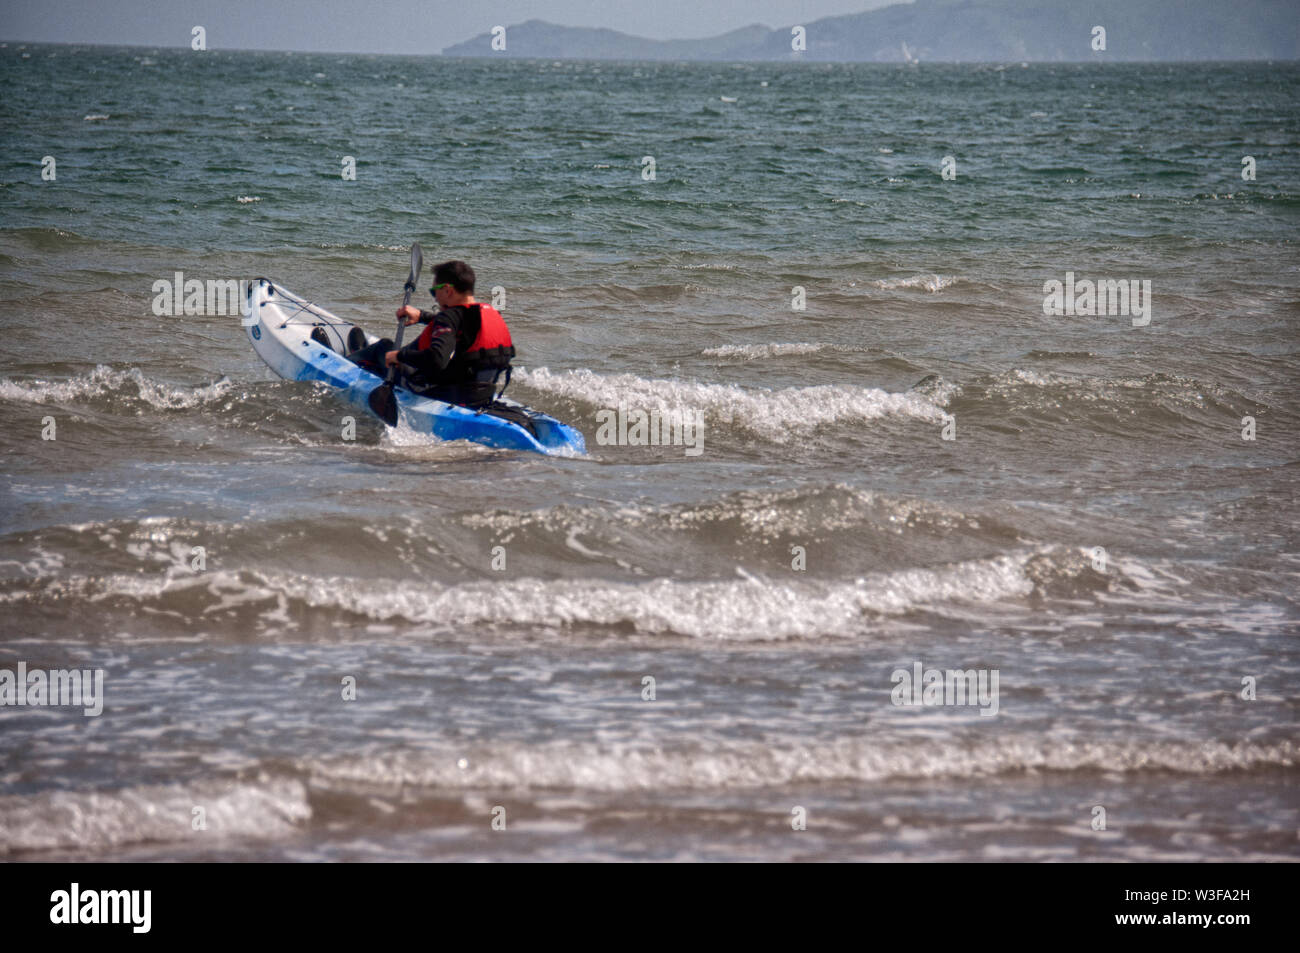 Cannoning in the Irish Sea at Skerries in Co. Dublin, Ireland - Stock Image